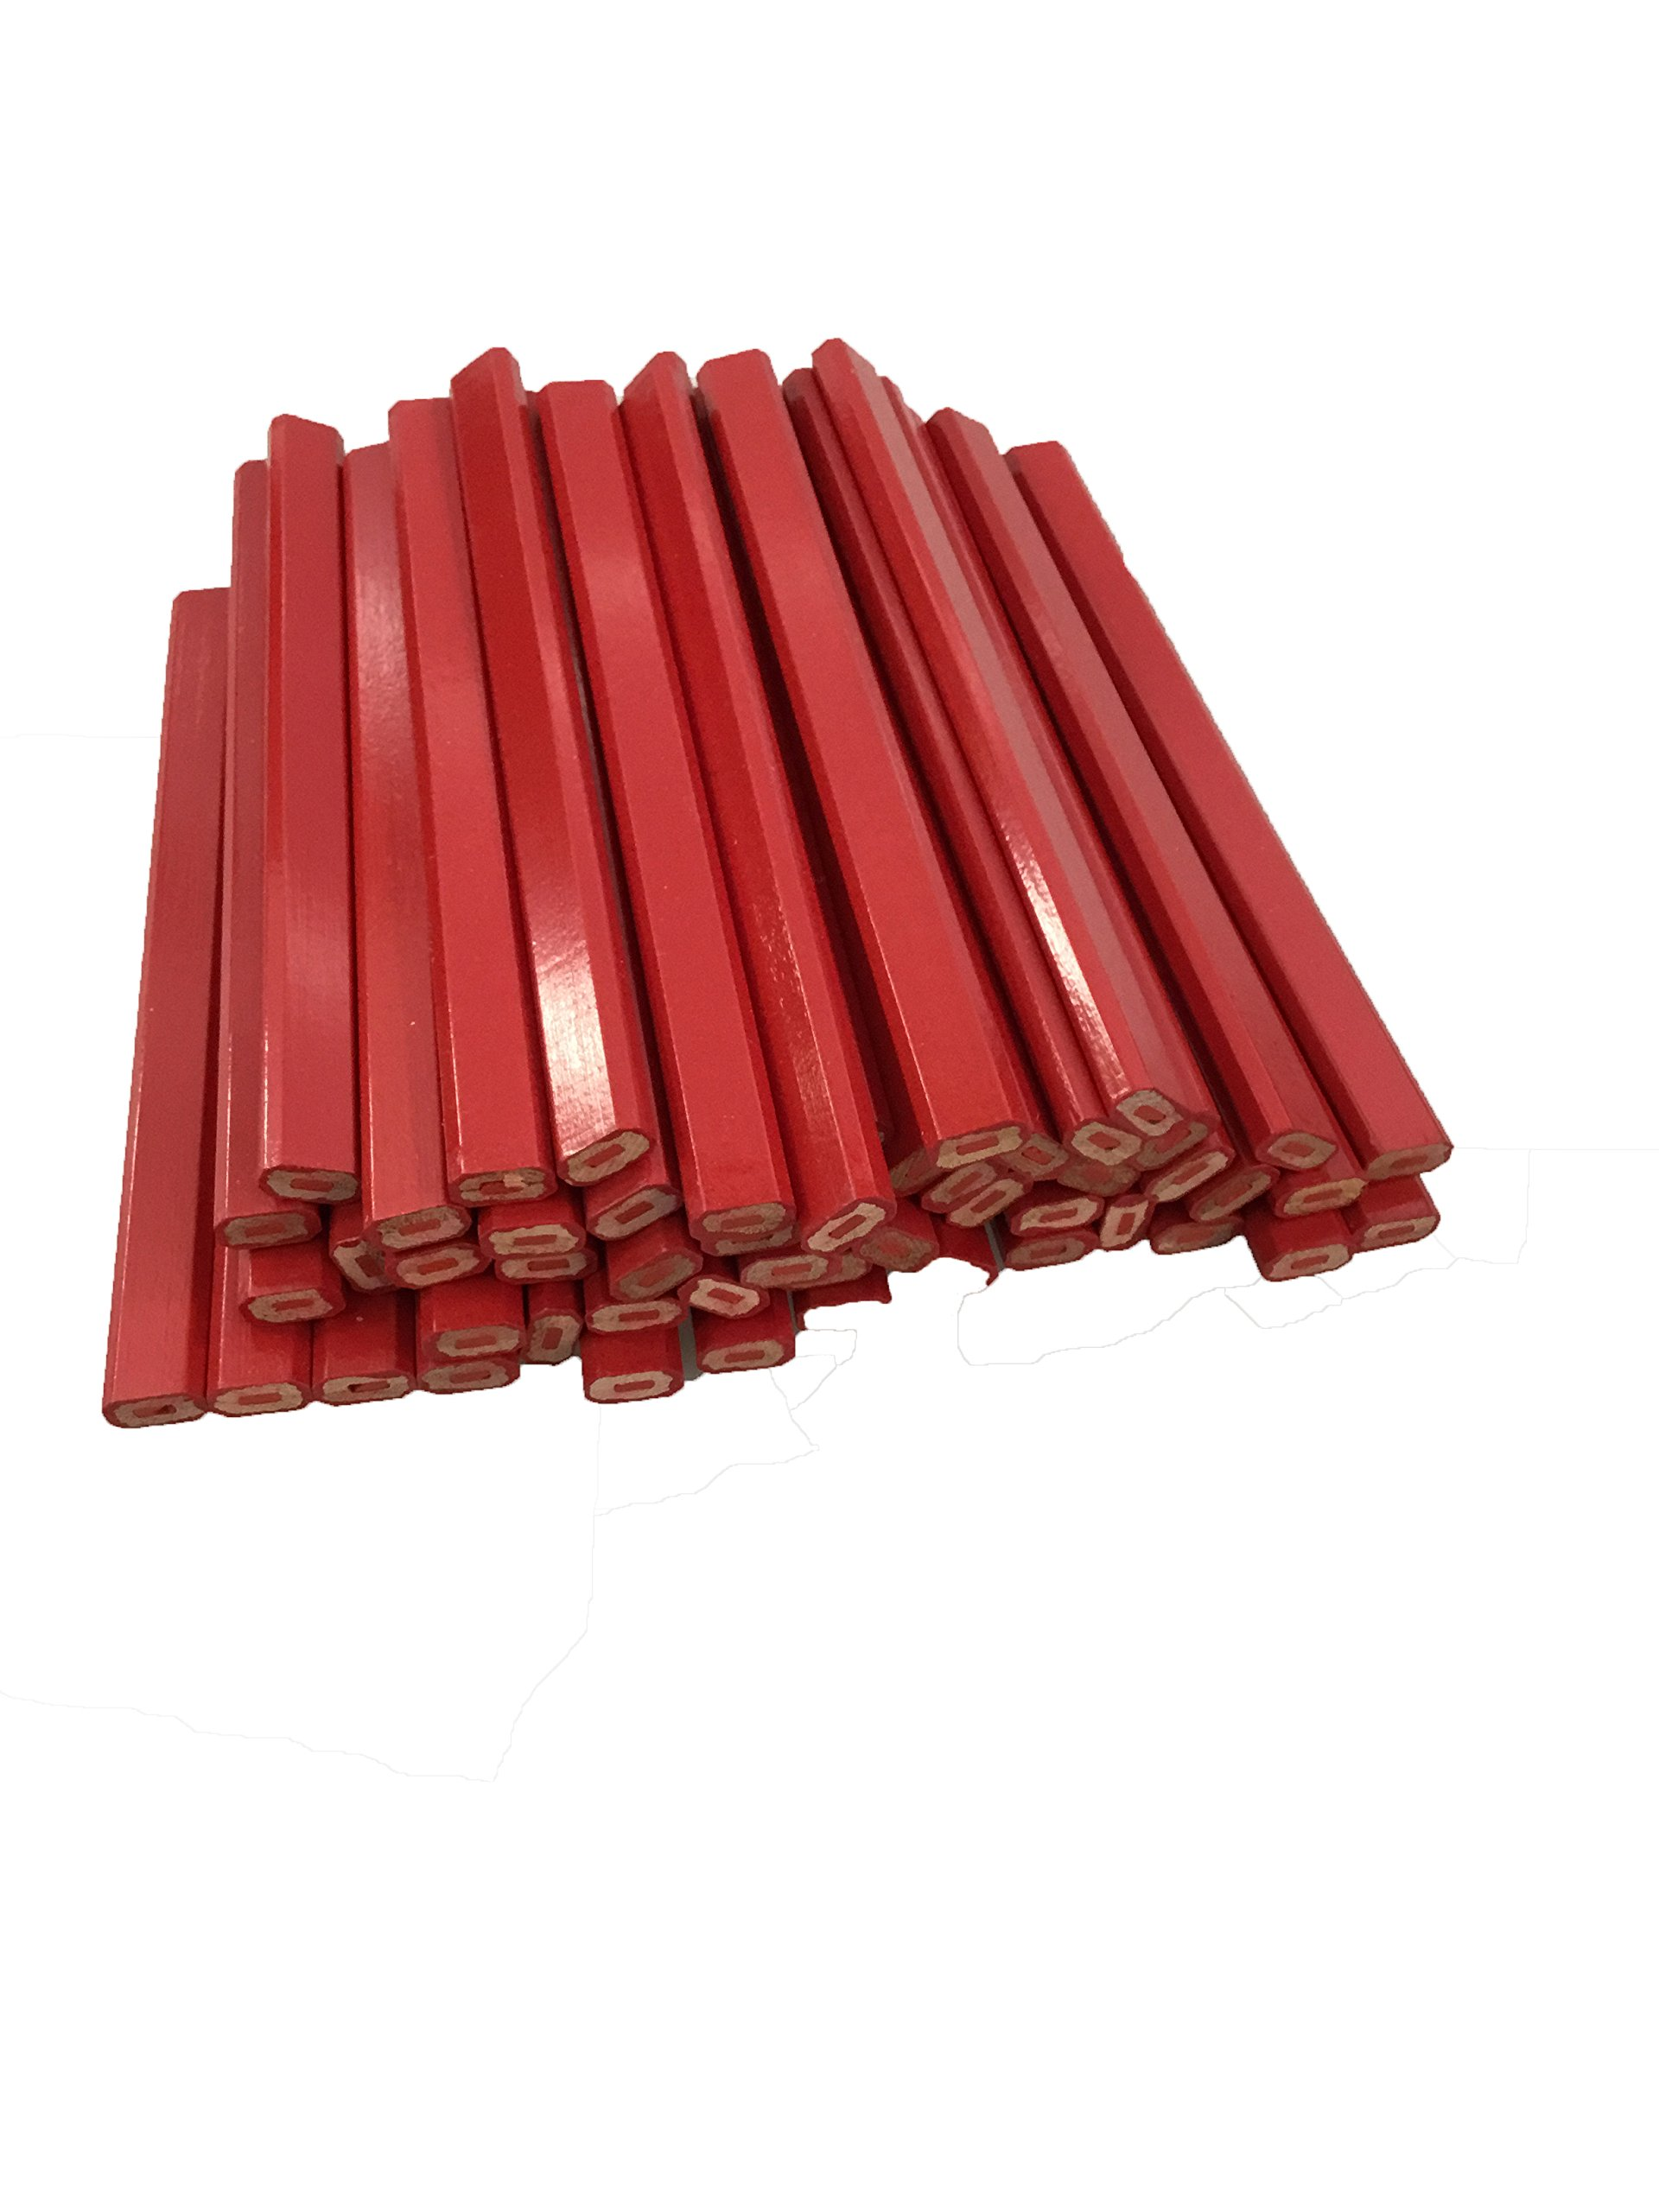 Flat Wooden Red With Red Lead Carpenter Pencils - 72 Count Bulk Box Made In The USA ...